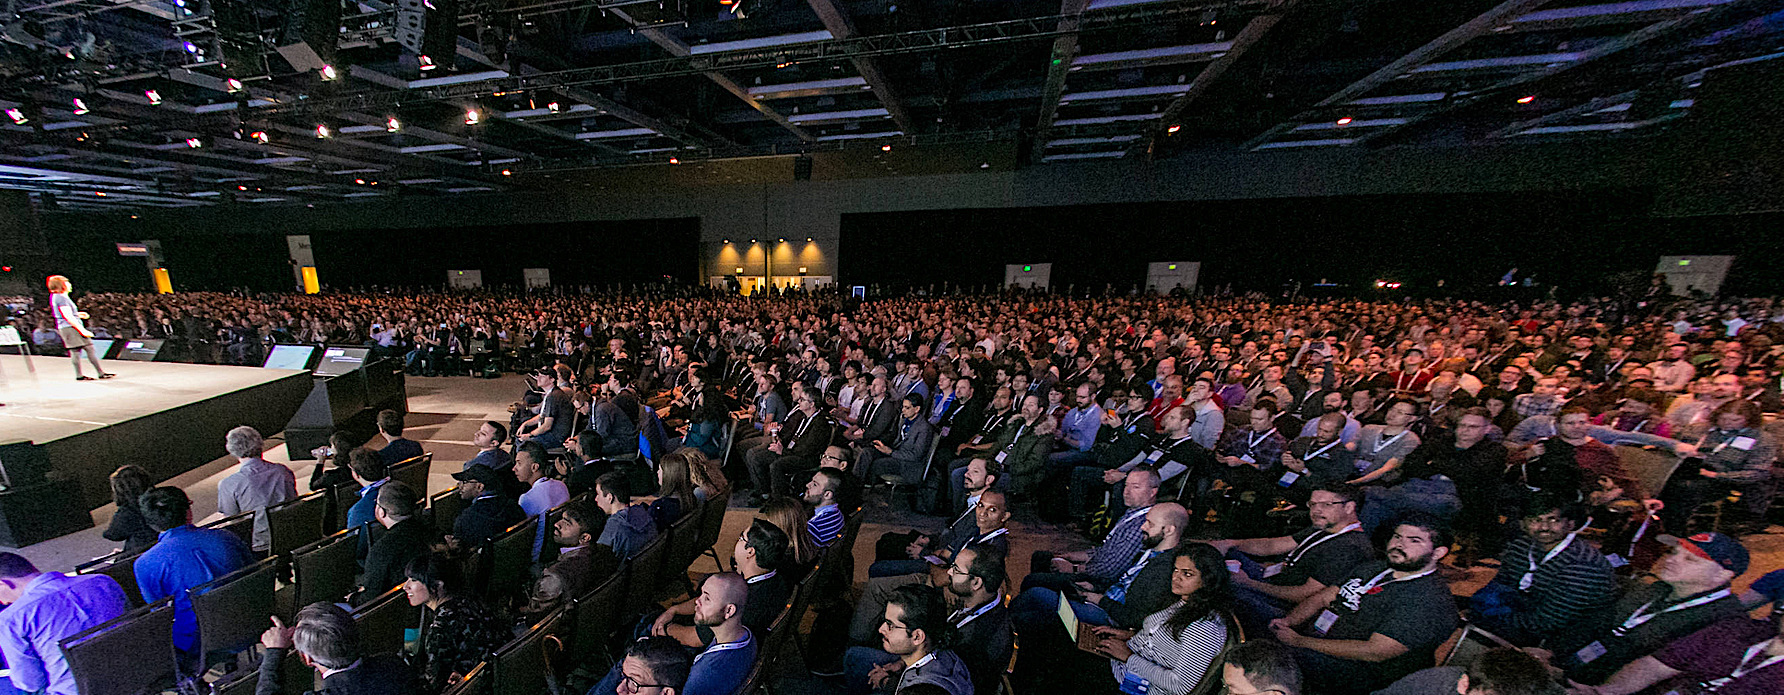 Linux Foundation Blogs Linux Foundation Blogs Photo